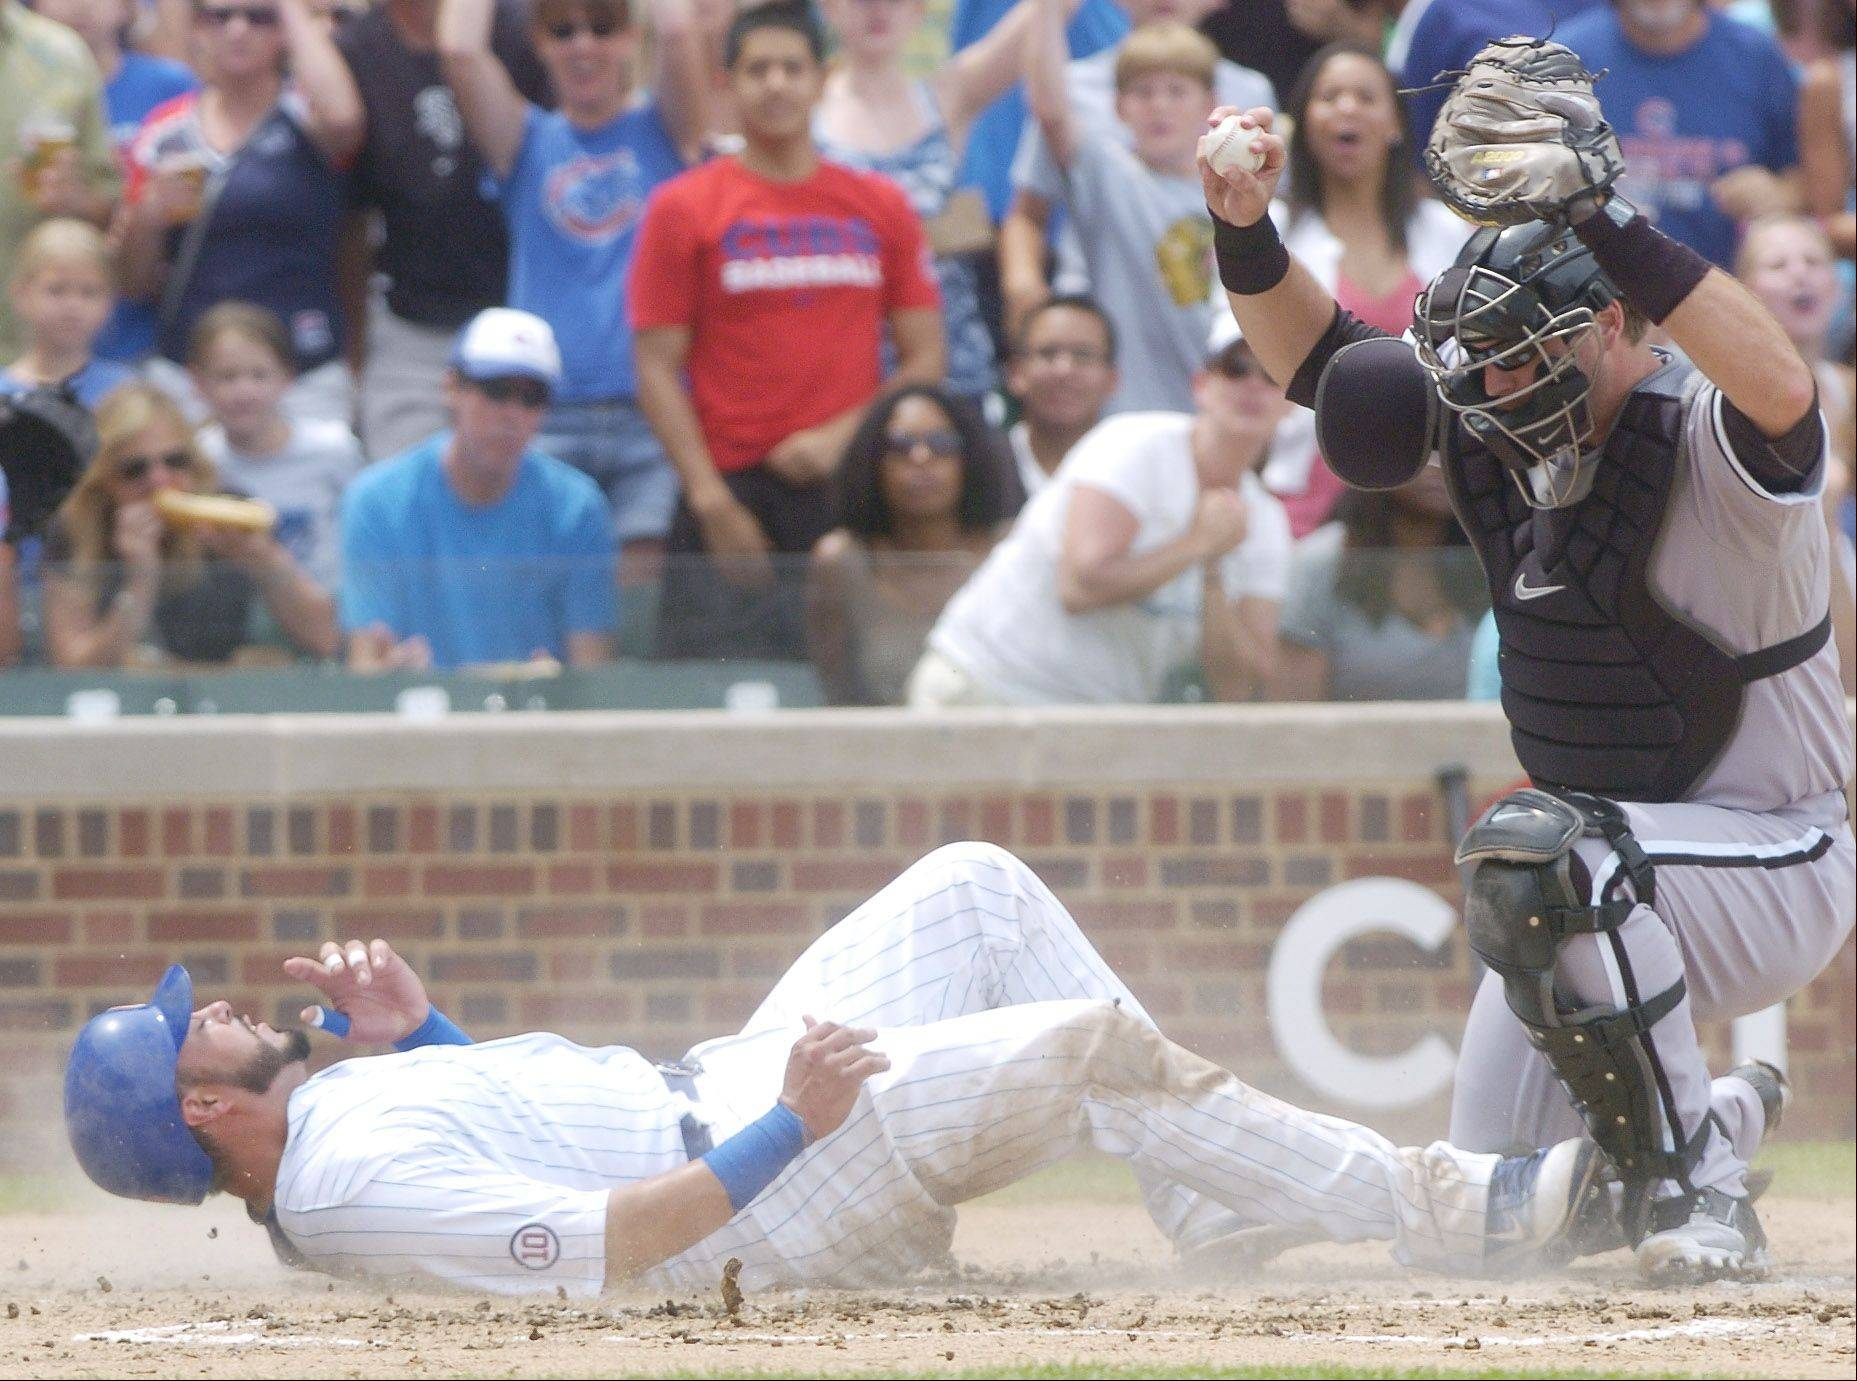 Geovany Soto of the Cubs winds up on his back after getting tagged out at the plate by White Sox catcher A.J. Pierzynski to end the third inning of Sunday's game at Wrigley Field.